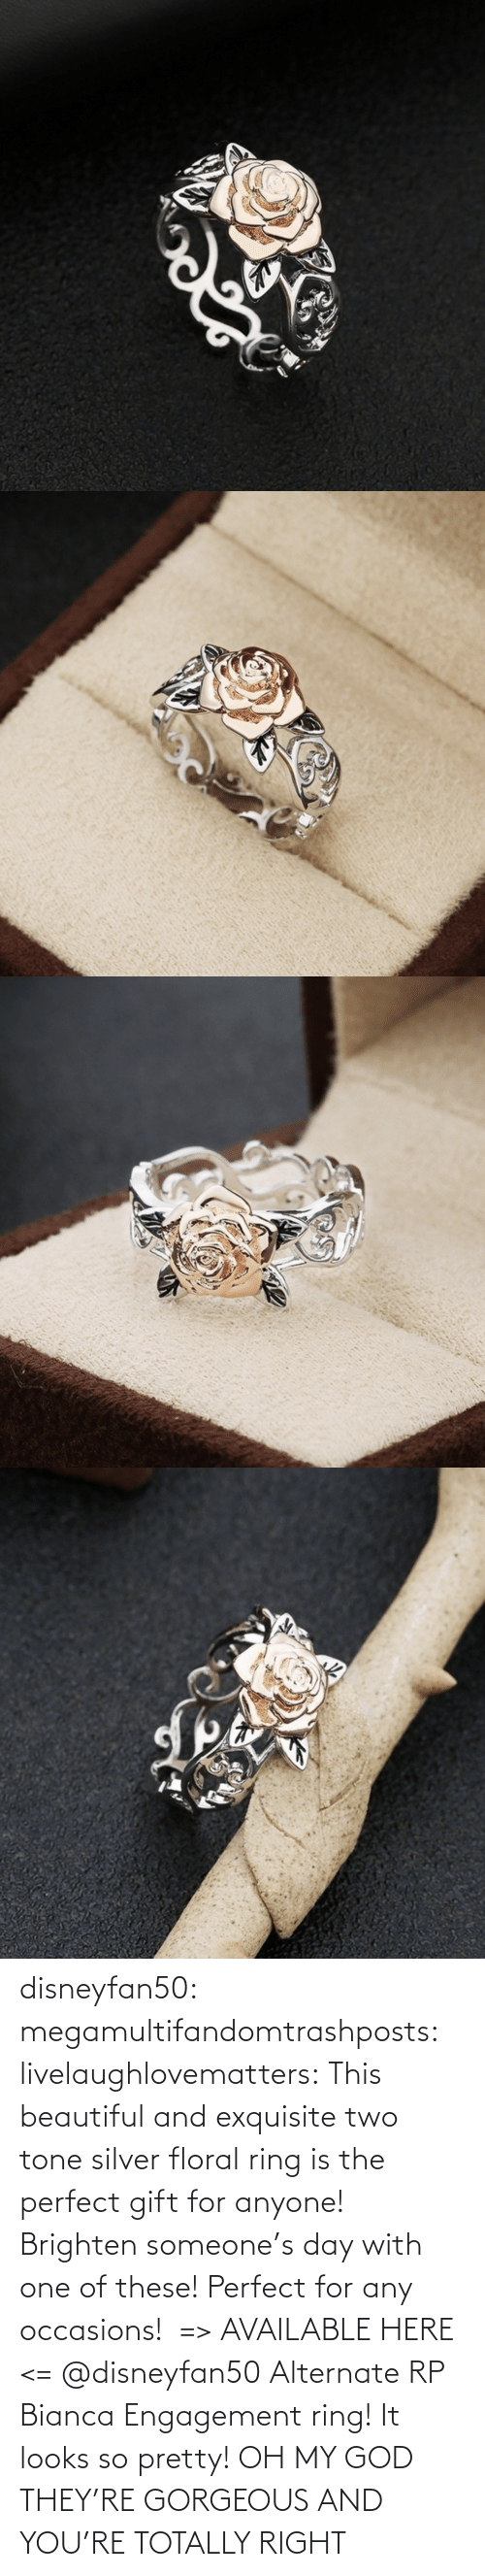 one: disneyfan50: megamultifandomtrashposts:  livelaughlovematters:  This beautiful and exquisite two tone silver floral ring is the perfect gift for anyone! Brighten someone's day with one of these! Perfect for any occasions!  => AVAILABLE HERE <=    @disneyfan50 Alternate RP Bianca Engagement ring! It looks so pretty!  OH MY GOD THEY'RE GORGEOUS AND YOU'RE TOTALLY RIGHT